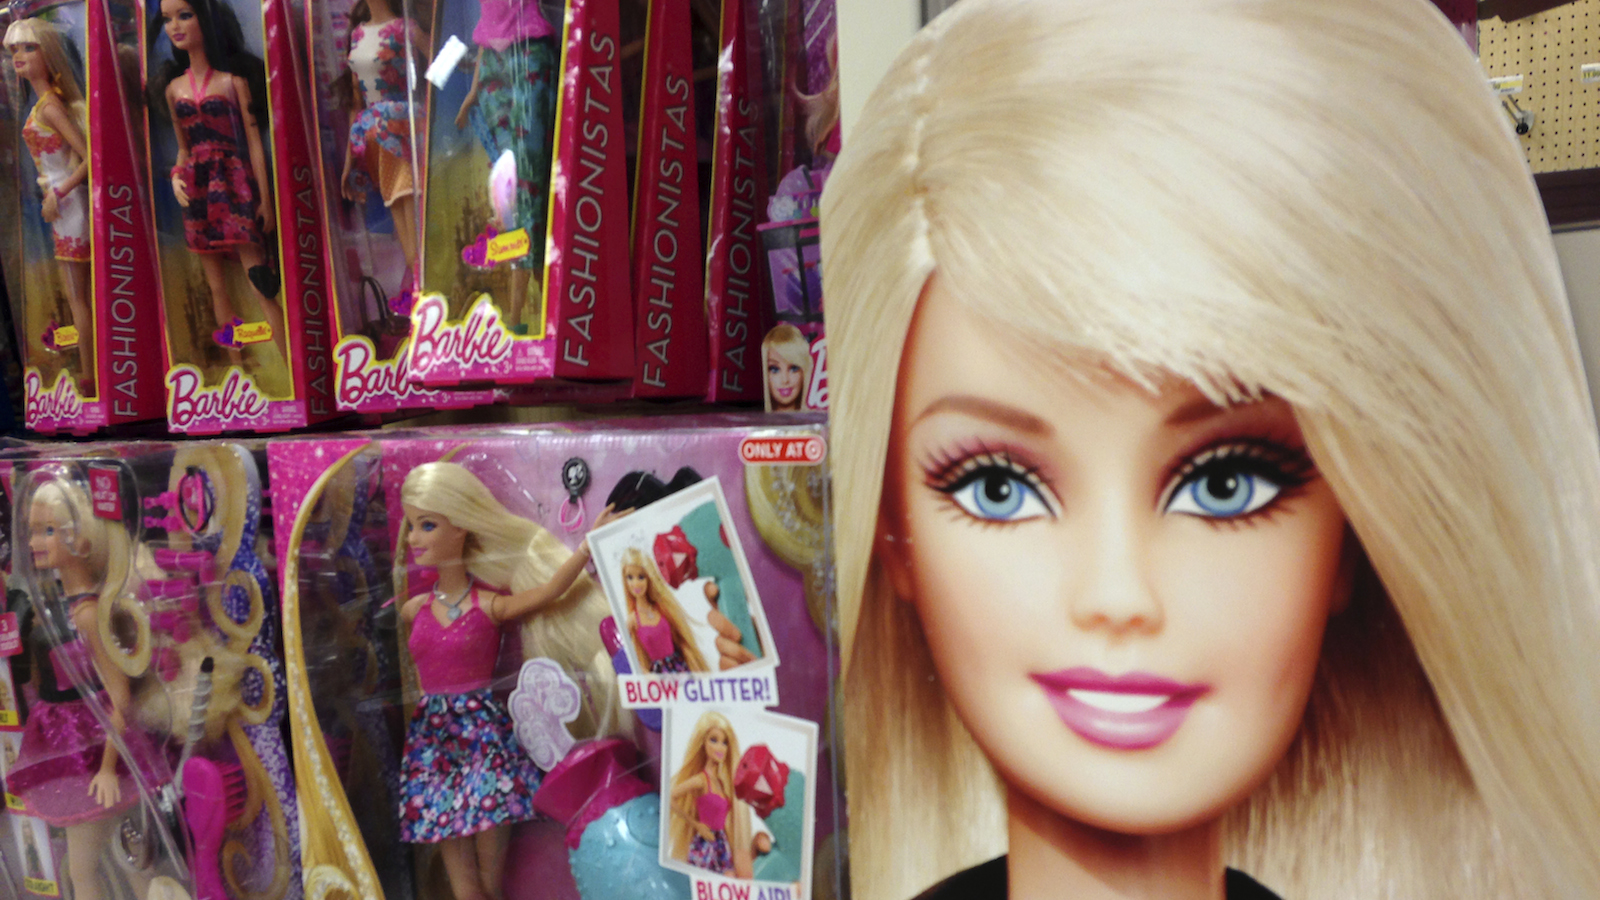 Barbie dolls are shown in the toy department of a retail store in Encinitas, California October 14, 2014.  Mattel Inc's revenue fell for the fourth straight quarter as demand for its billion-dollar brands, Barbie and Fisher-Price, slipped further, increasing pressure on the toymaker as it heads into the holiday shopping season. Picture taken October 14.    (UNITES STATES - Tags: SOCIETY BUSINESS) - RTR4AH0R